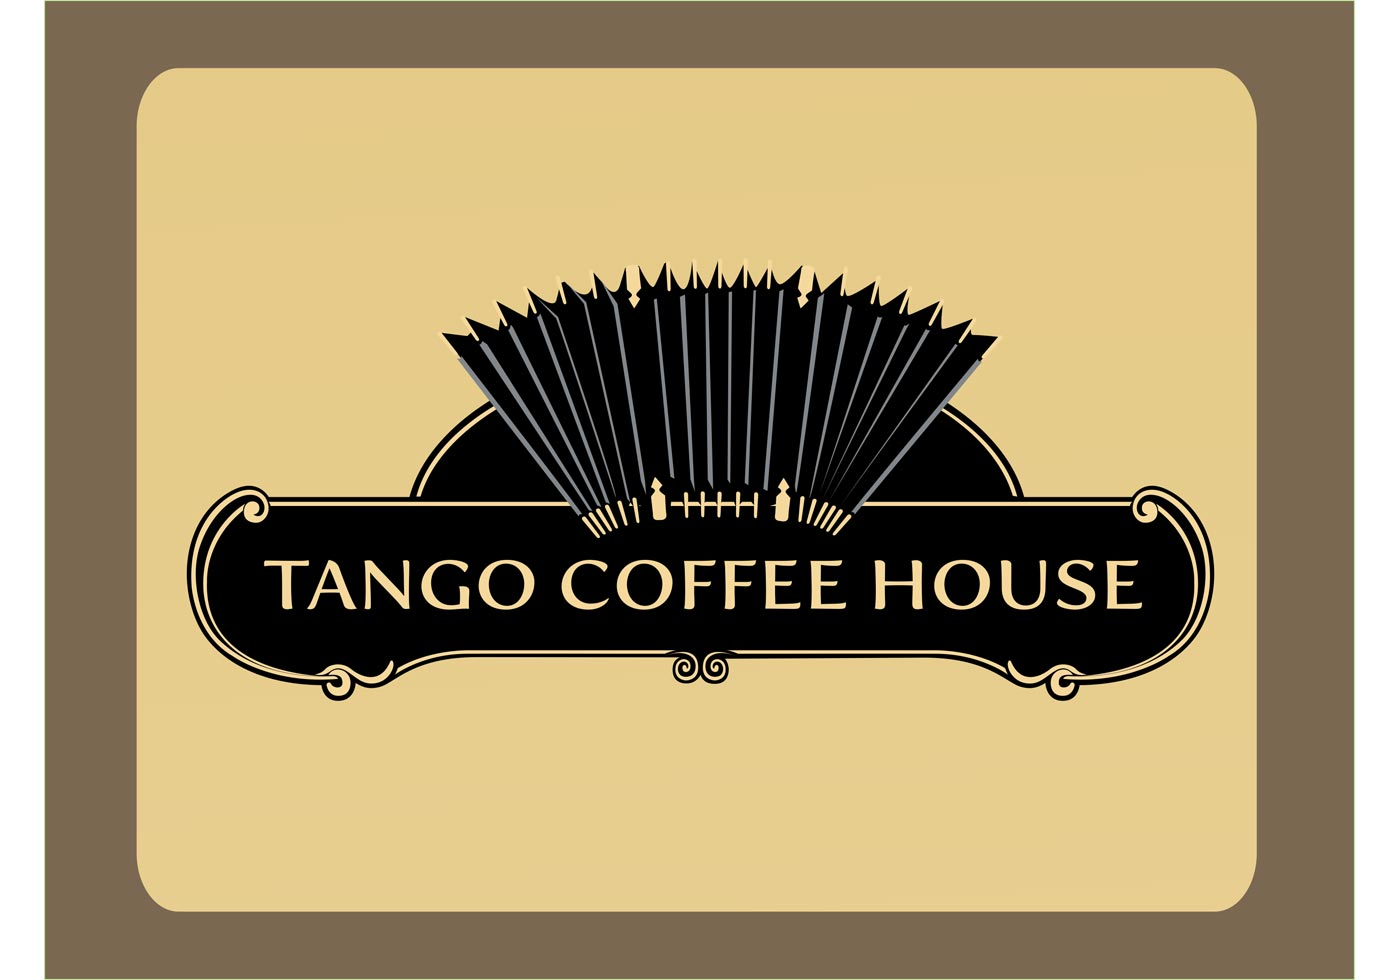 Coffee House Logo - Download Free Vector Art, Stock Graphics & Images